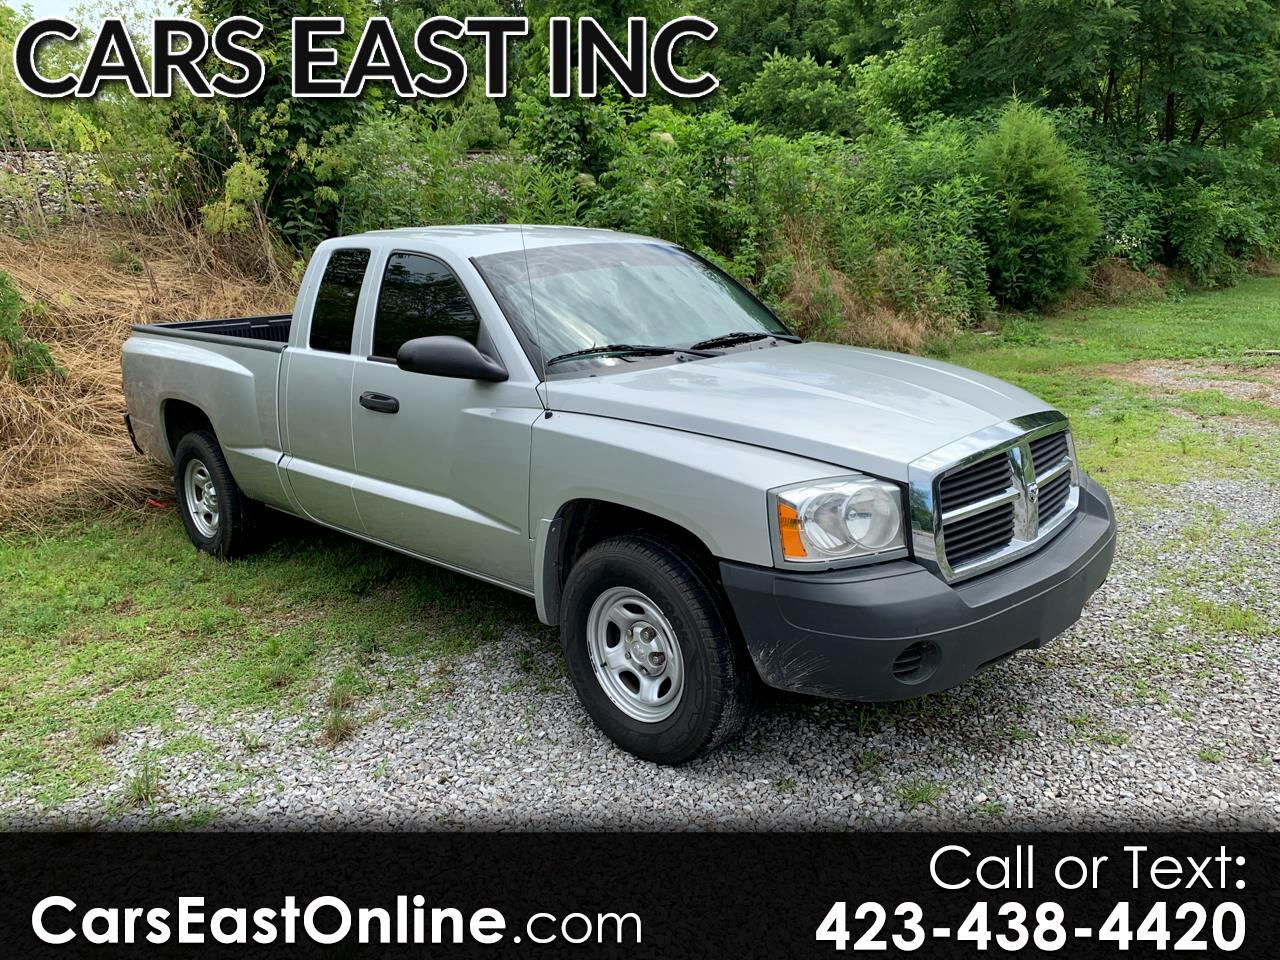 2007 Dodge Dakota 2WD Club Cab 131